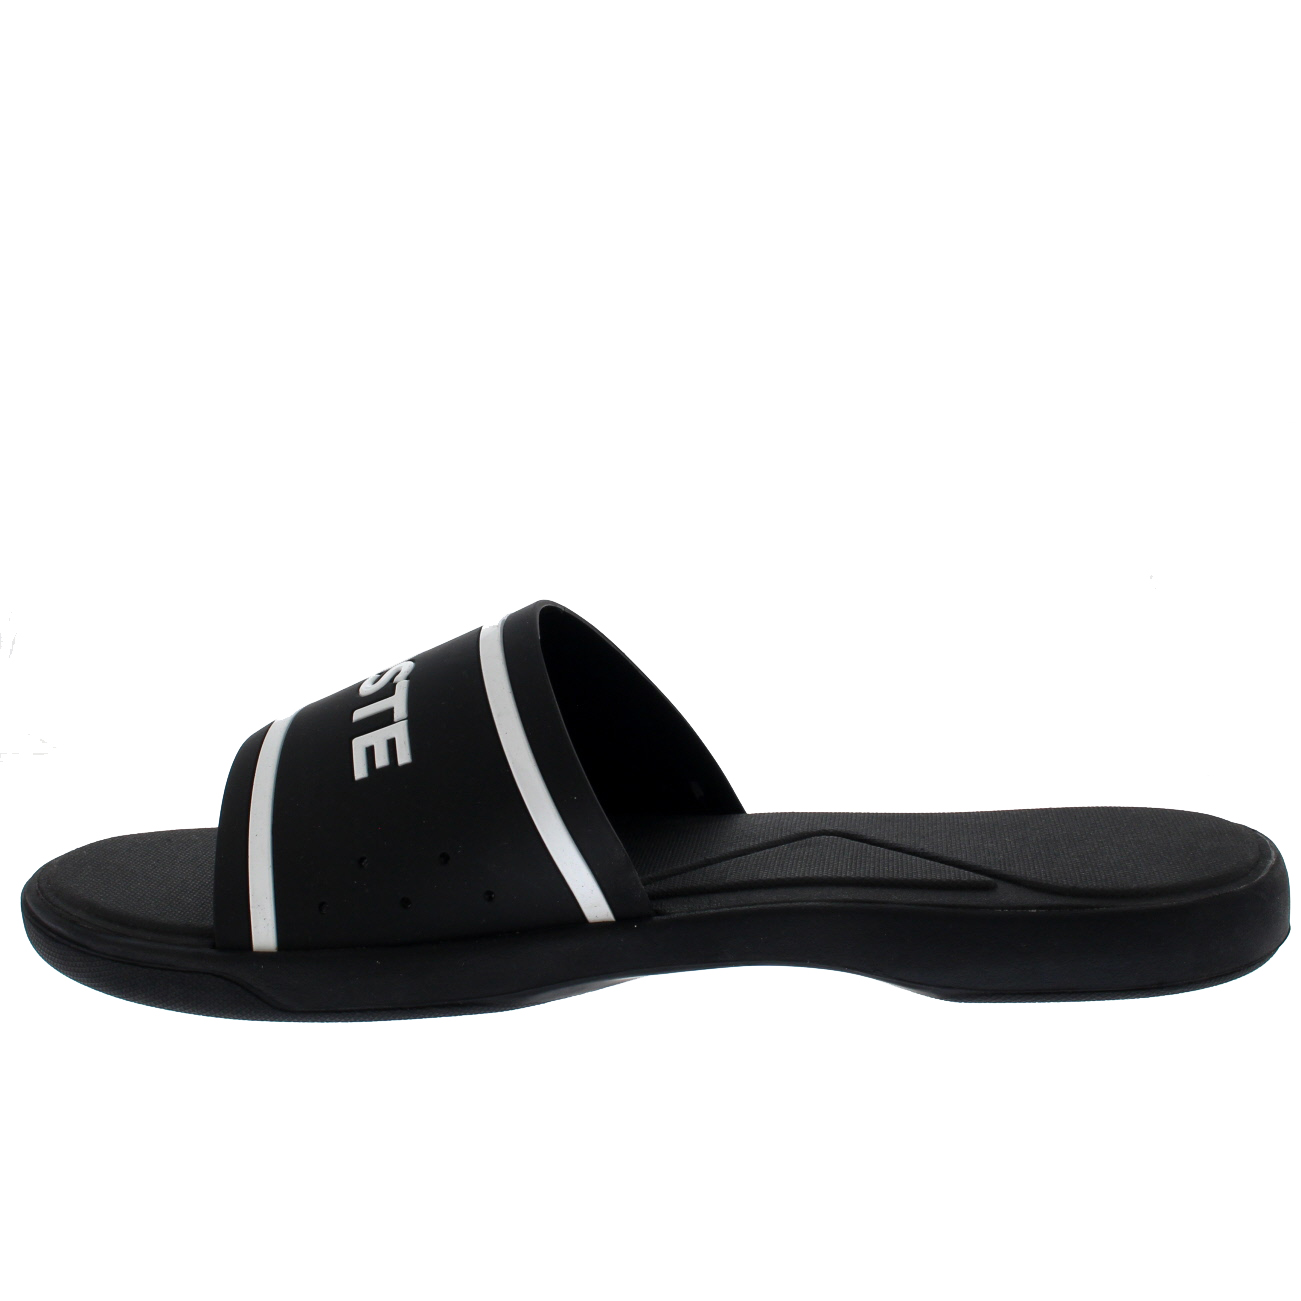 3a4748be62c46 Mens Lacoste L.30 118 2 Slides Casual Flat Beach Holiday Sport ...